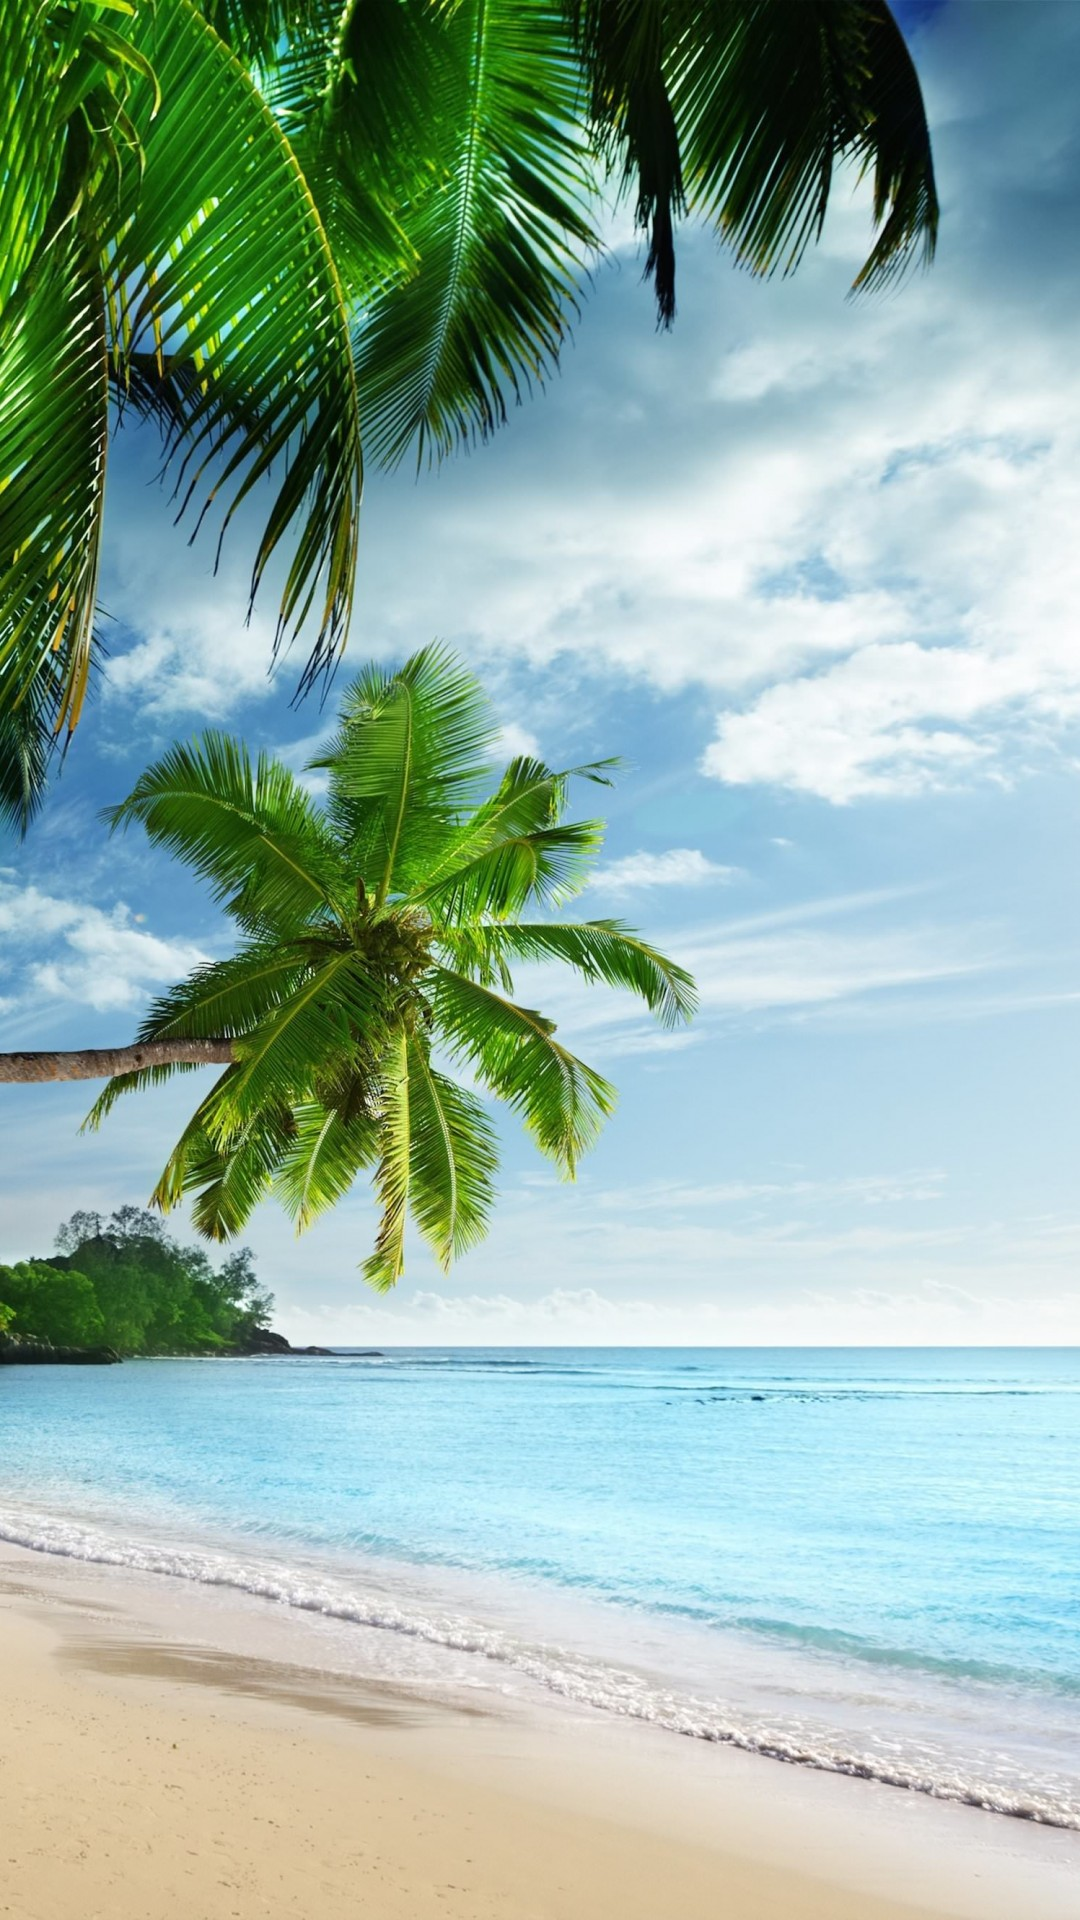 Tropical Paradise Beach Wallpaper for LG G2